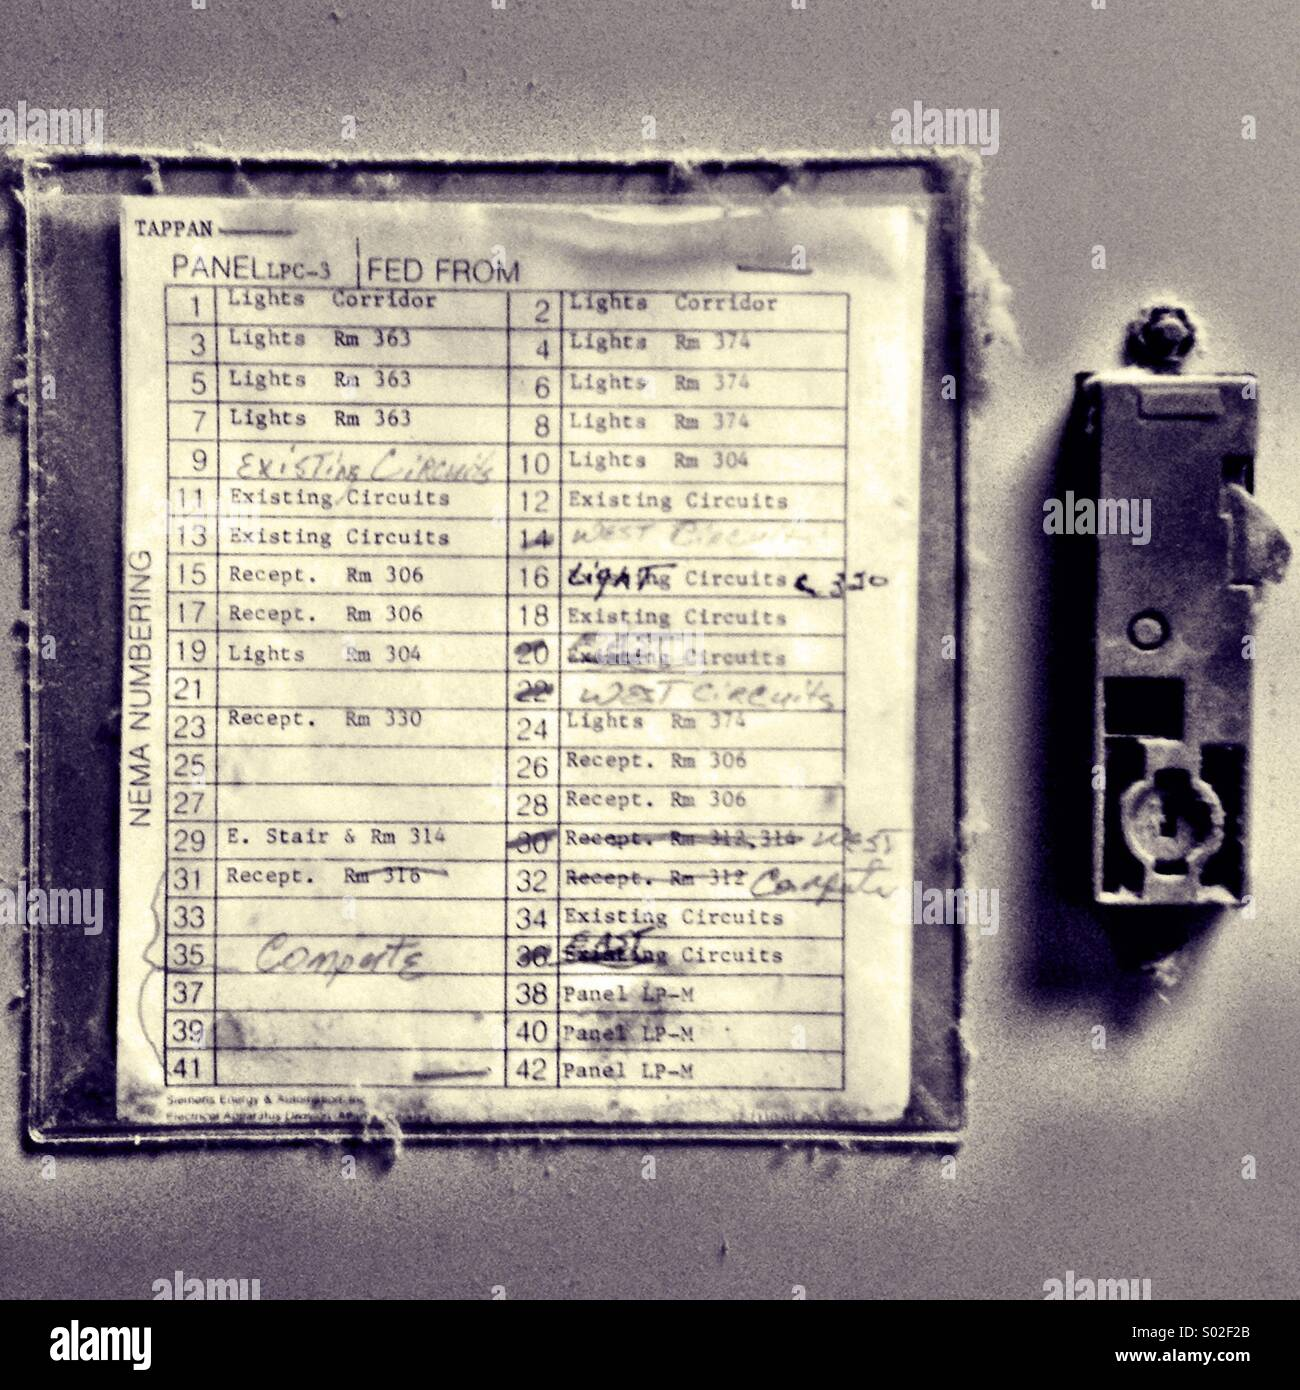 fuse box fuse stock photos & fuse box fuse stock images alamy plug fuse box fuse list from electrical junction box stock image